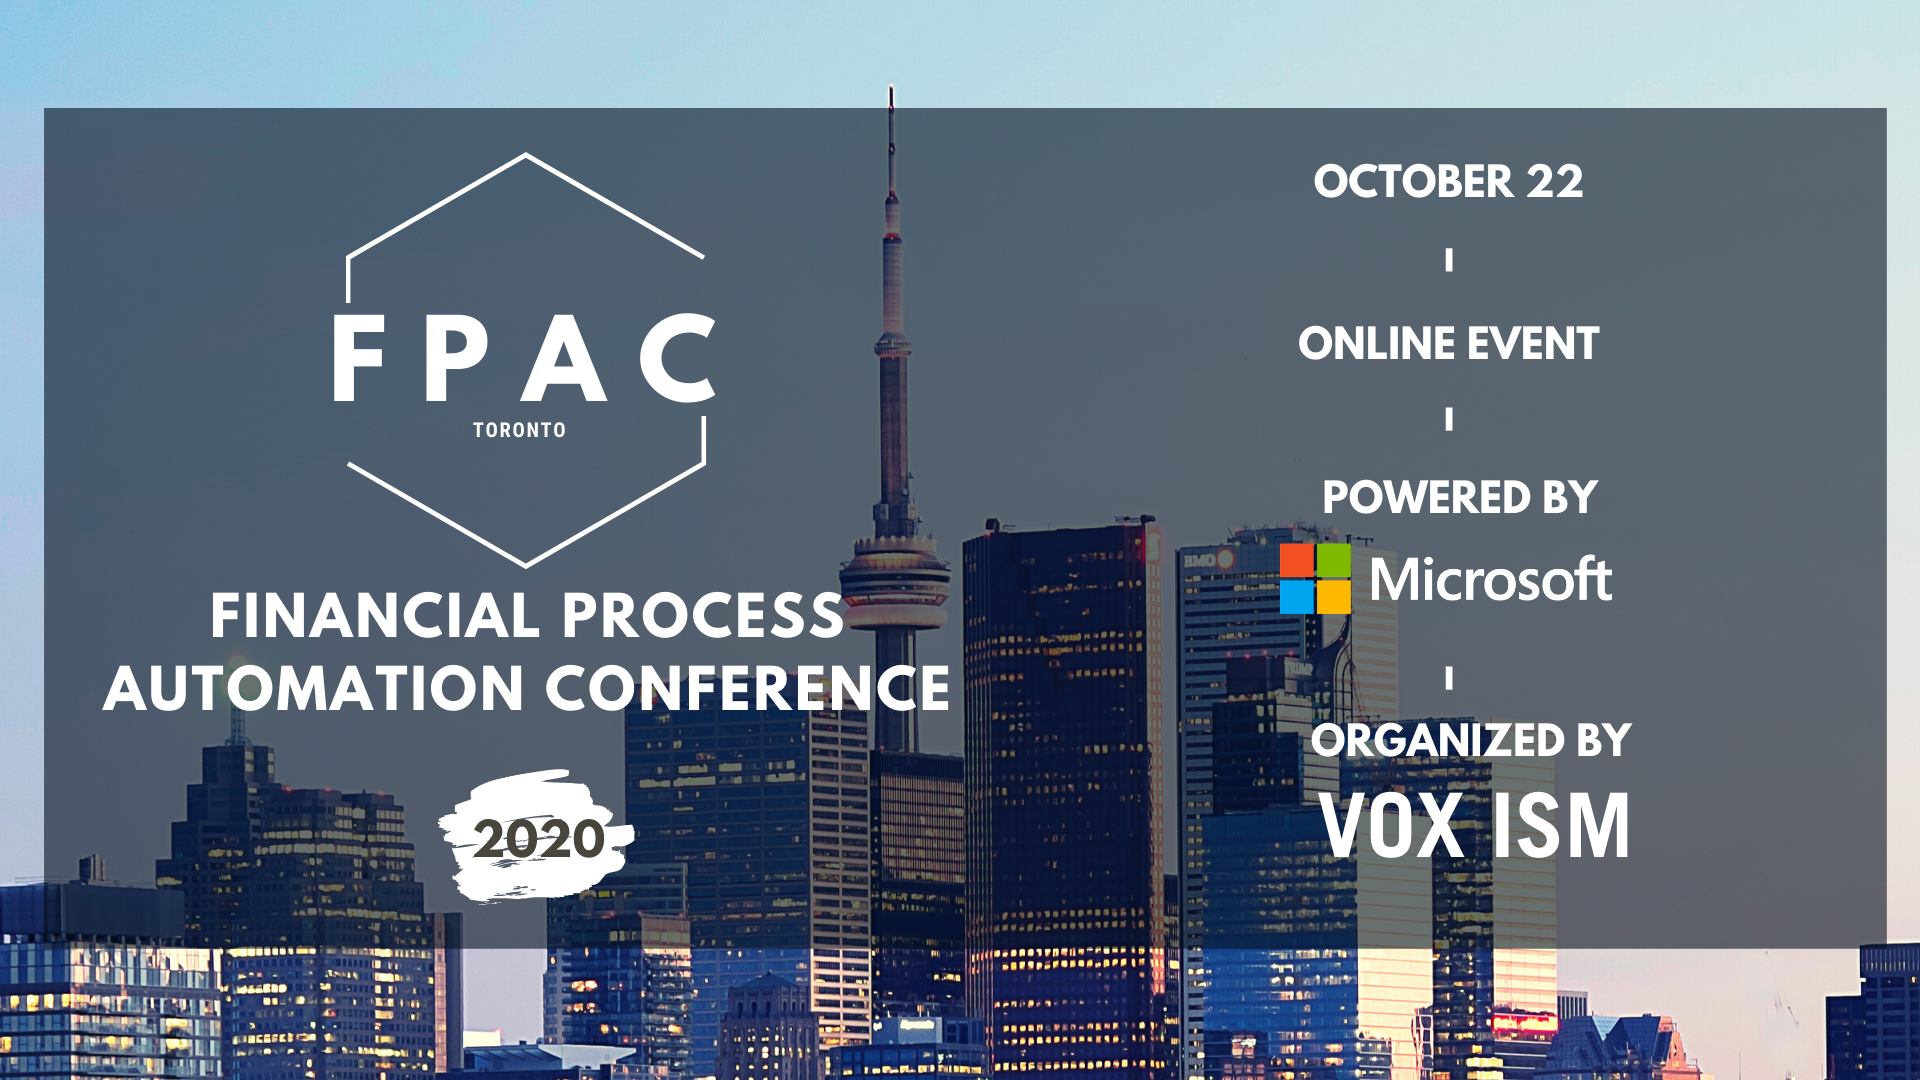 FPAC Fall 2020: Financial Process Automation Conference - October 22 - Online Event